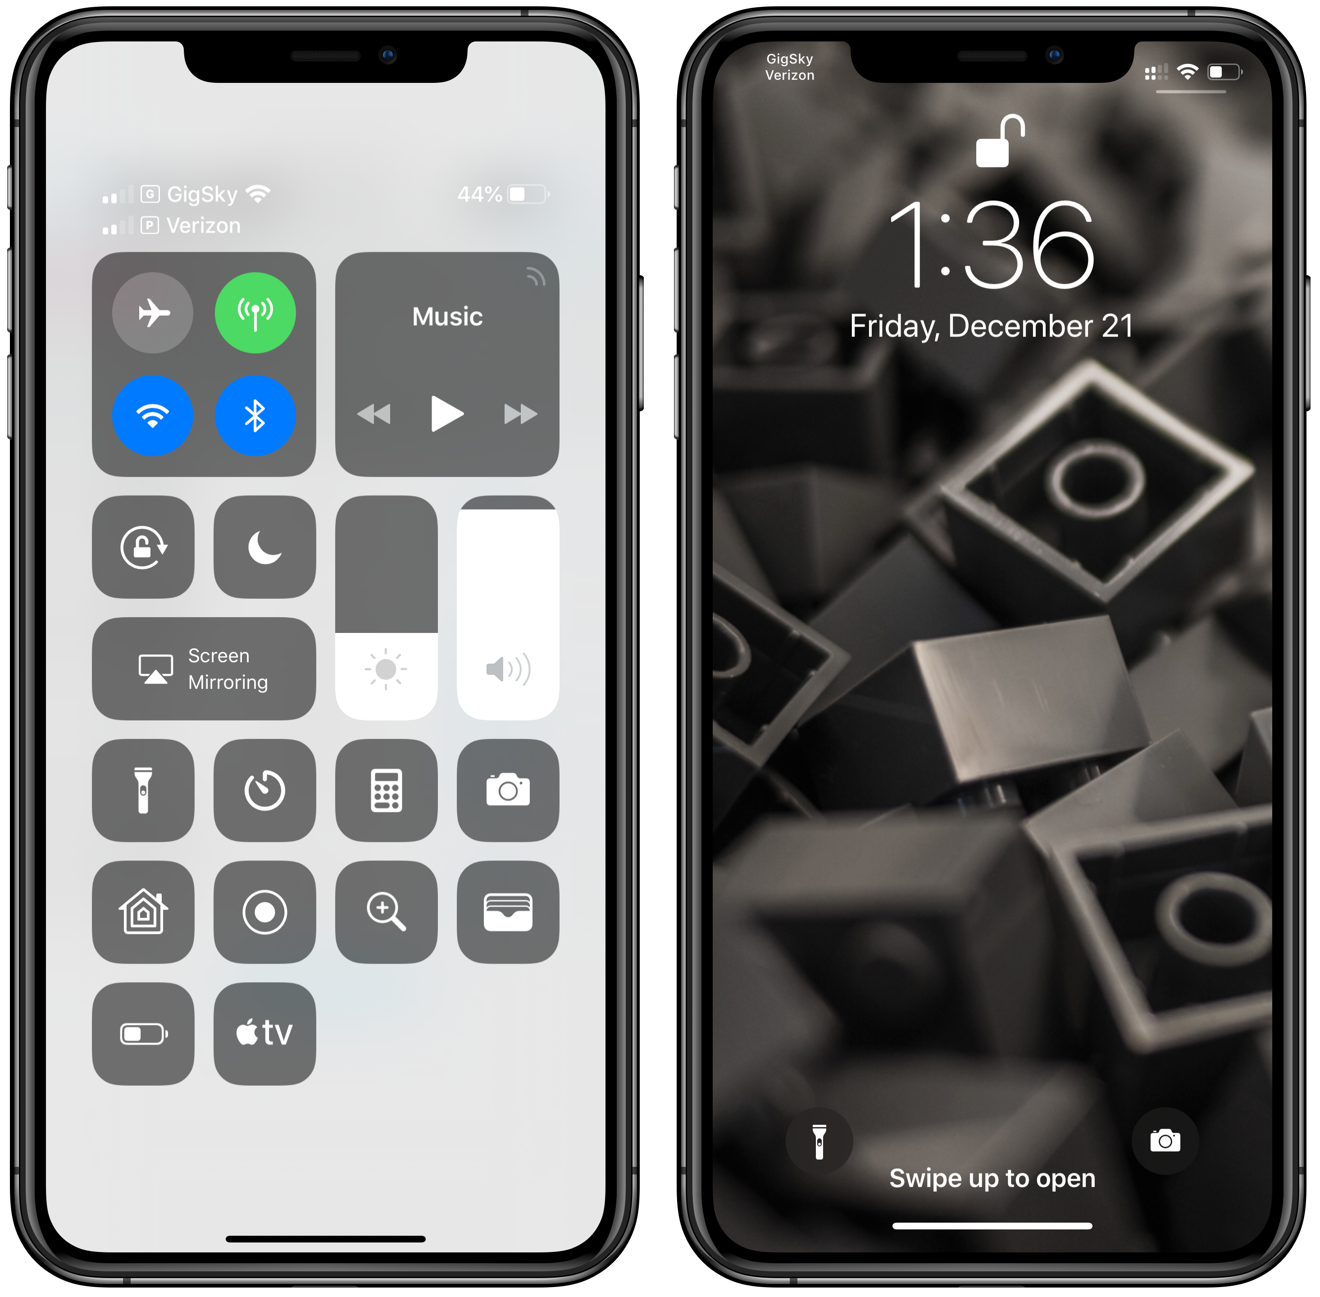 The lock screen and control center display both service's signal strength